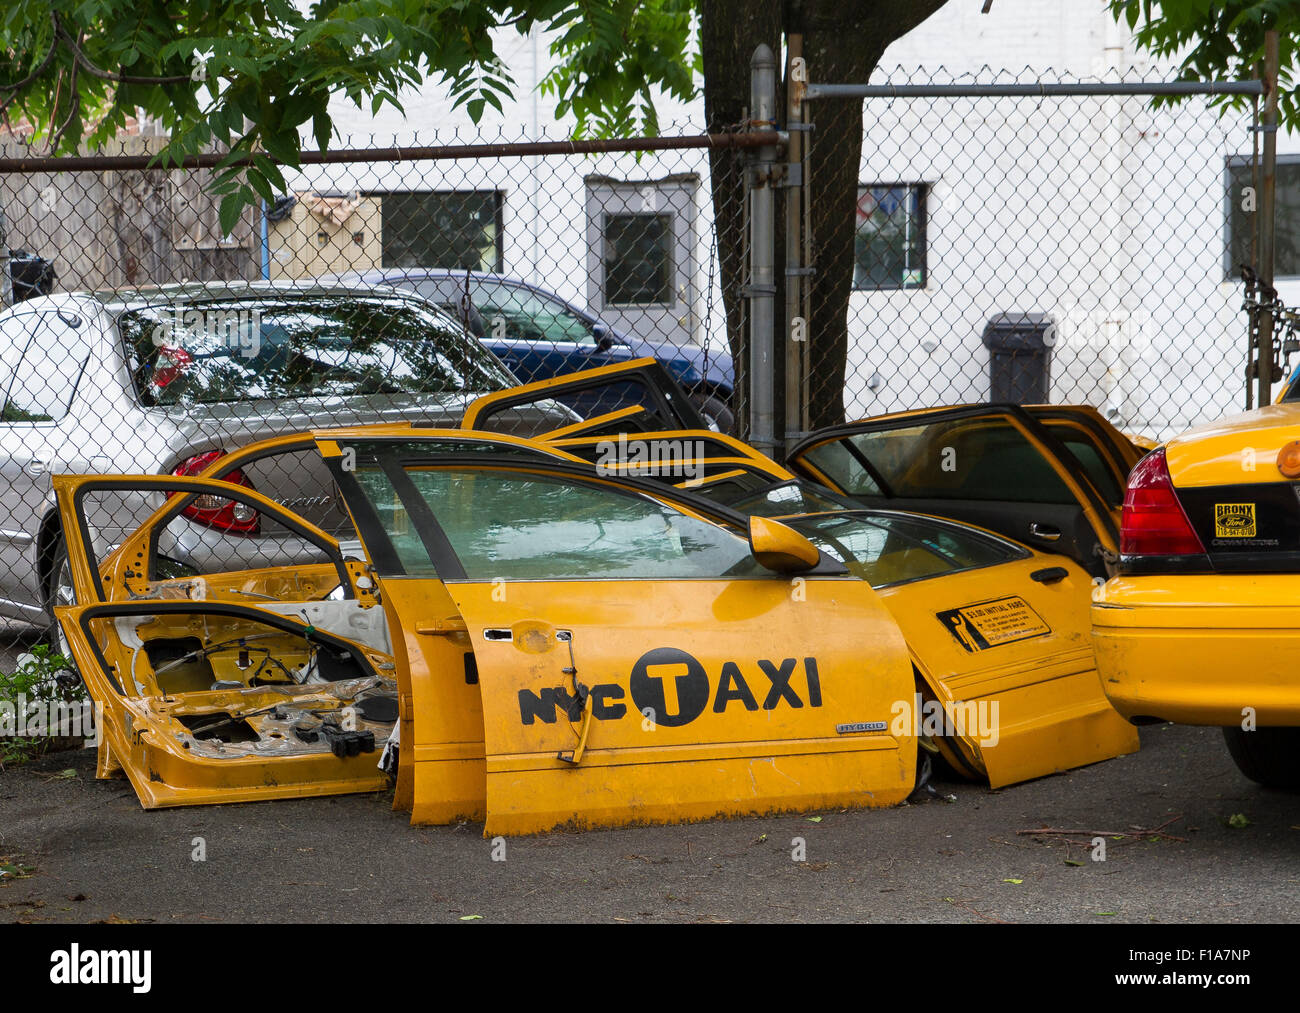 Scrapped New York Taxi Cabs in Long Island City NY - Stock Image